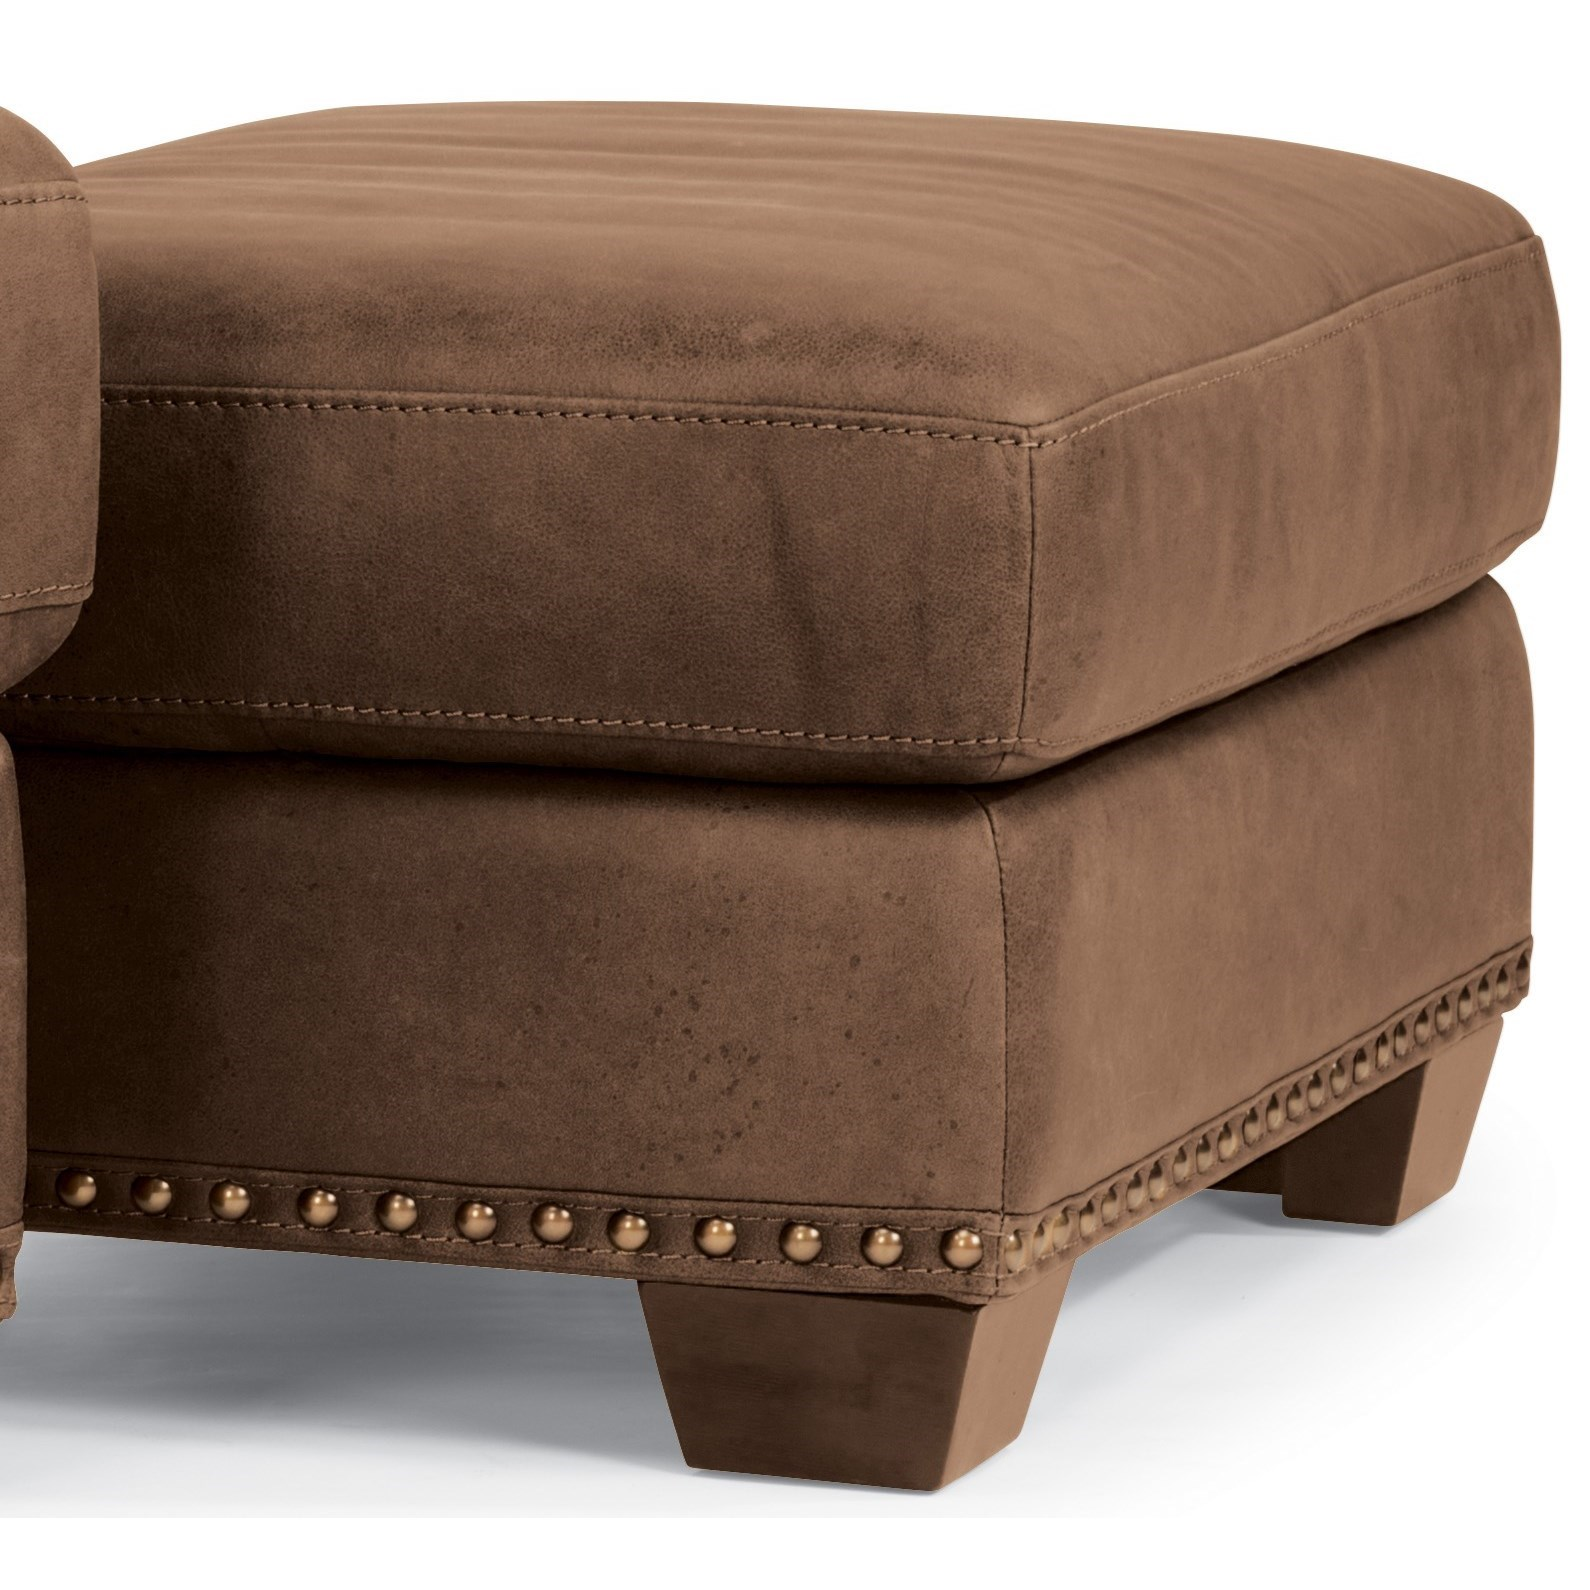 Flexsteel Latitudes-Fremont Leather Ottoman  - Item Number: 1324-08